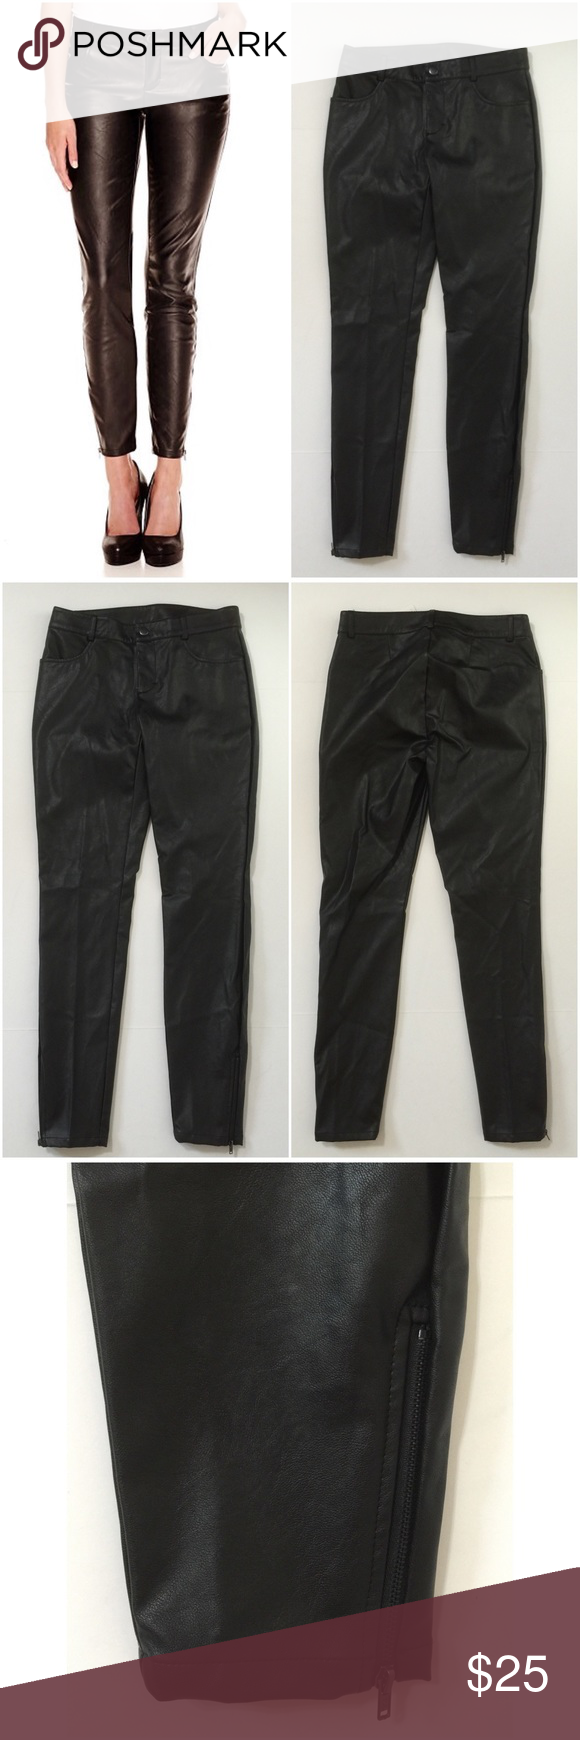 73dbb9393939a Decree Black Faux Leather Pants Size 3 Decree Women s Faux Leather Ankle Pants  Size 3 Black